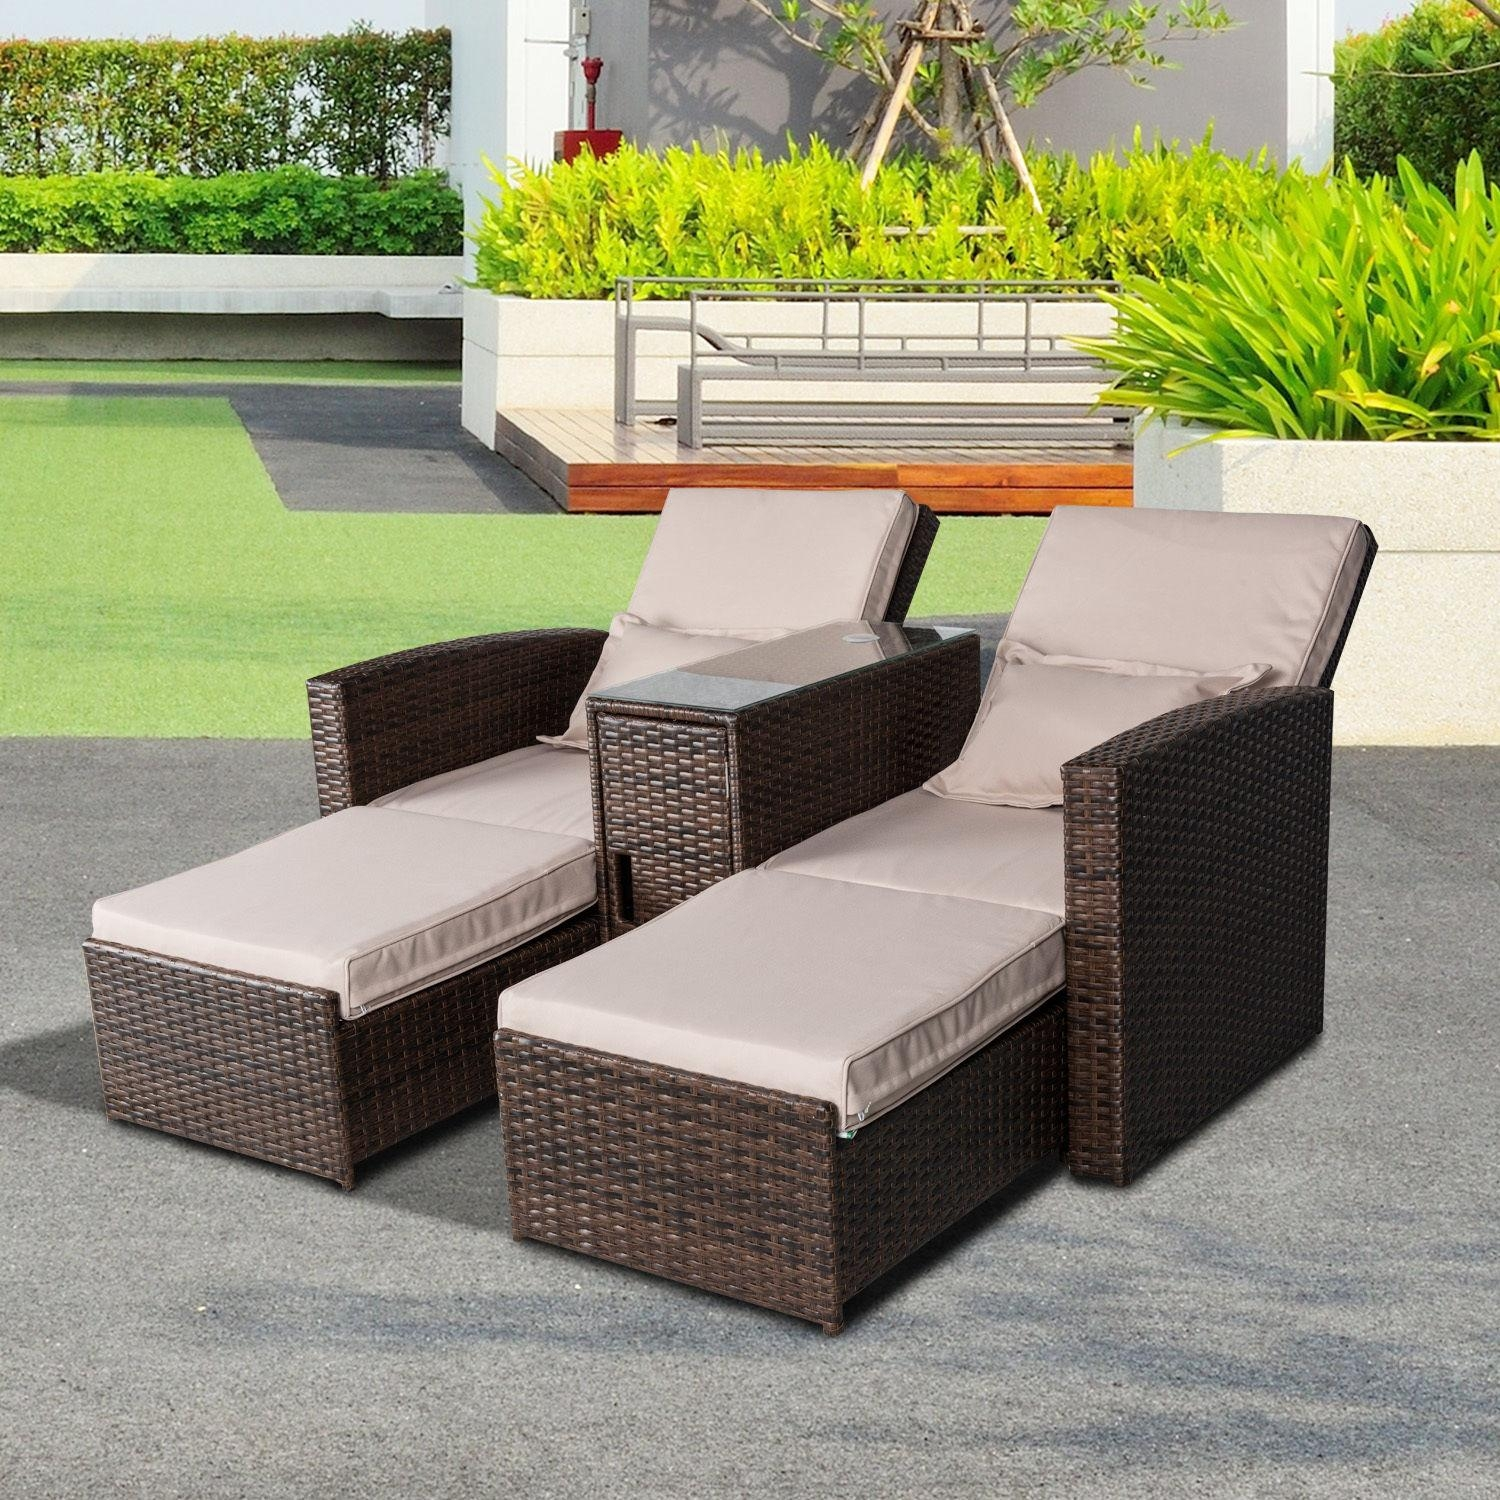 Sofas : Fabulous Patio Furniture Sets Black Wicker Outdoor With Modern Rattan Sofas (View 10 of 23)